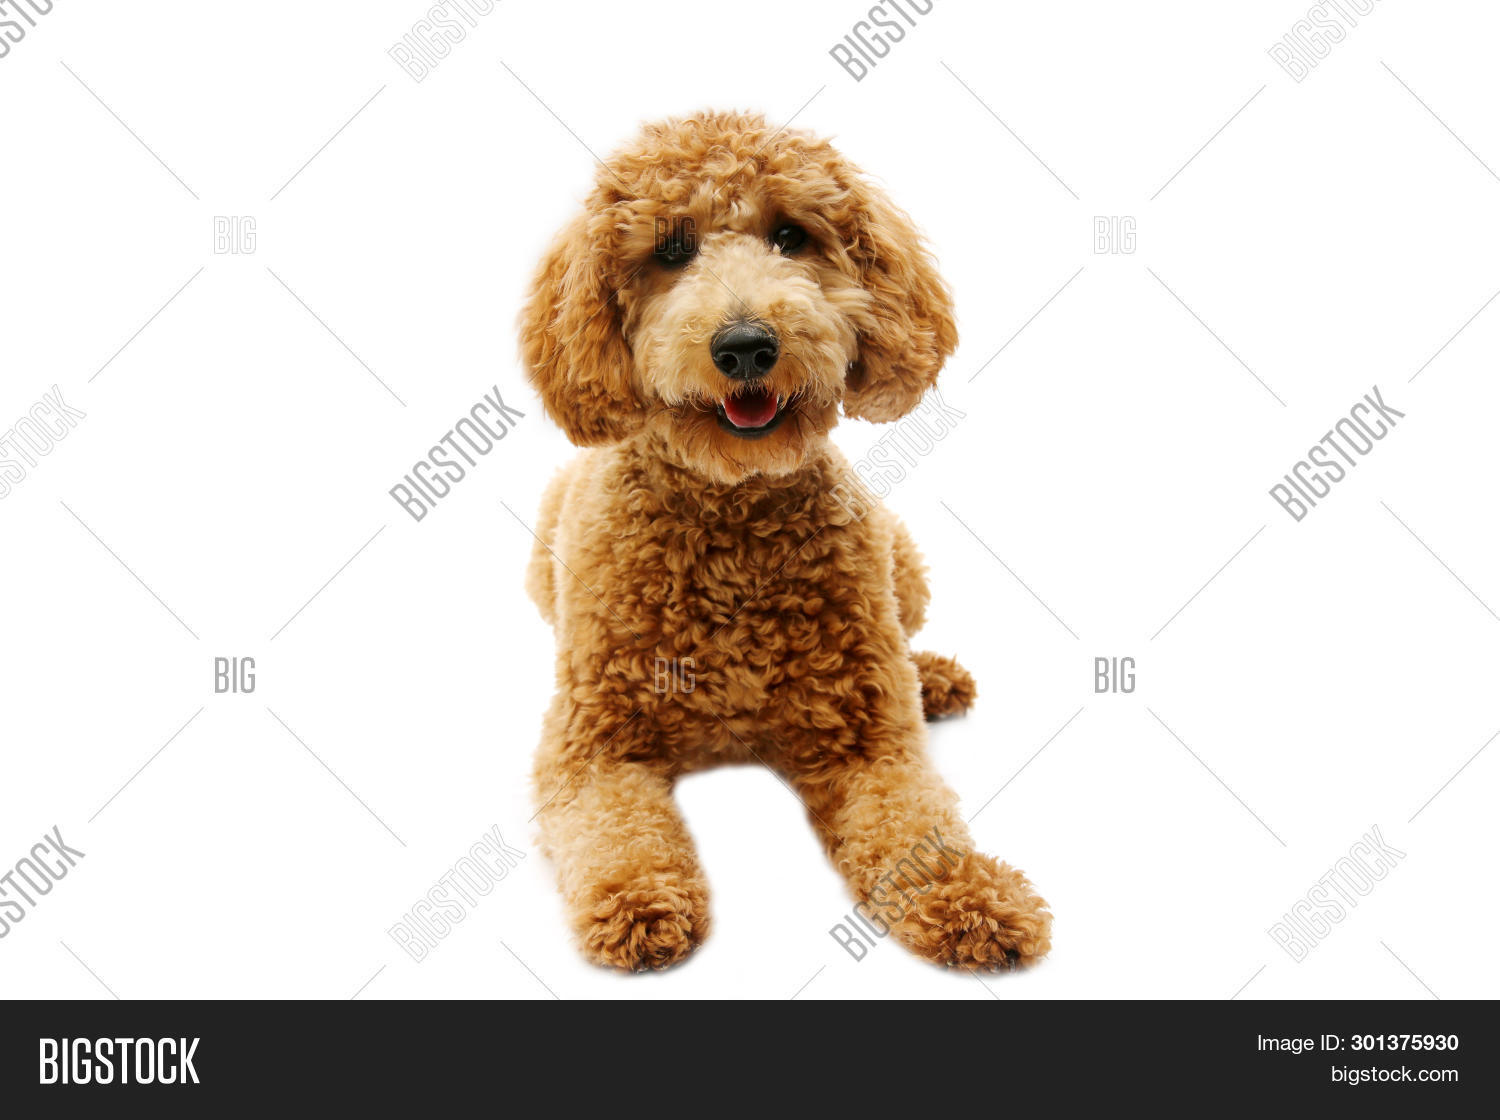 Golden Doodle Dog  Image & Photo (Free Trial) | Bigstock